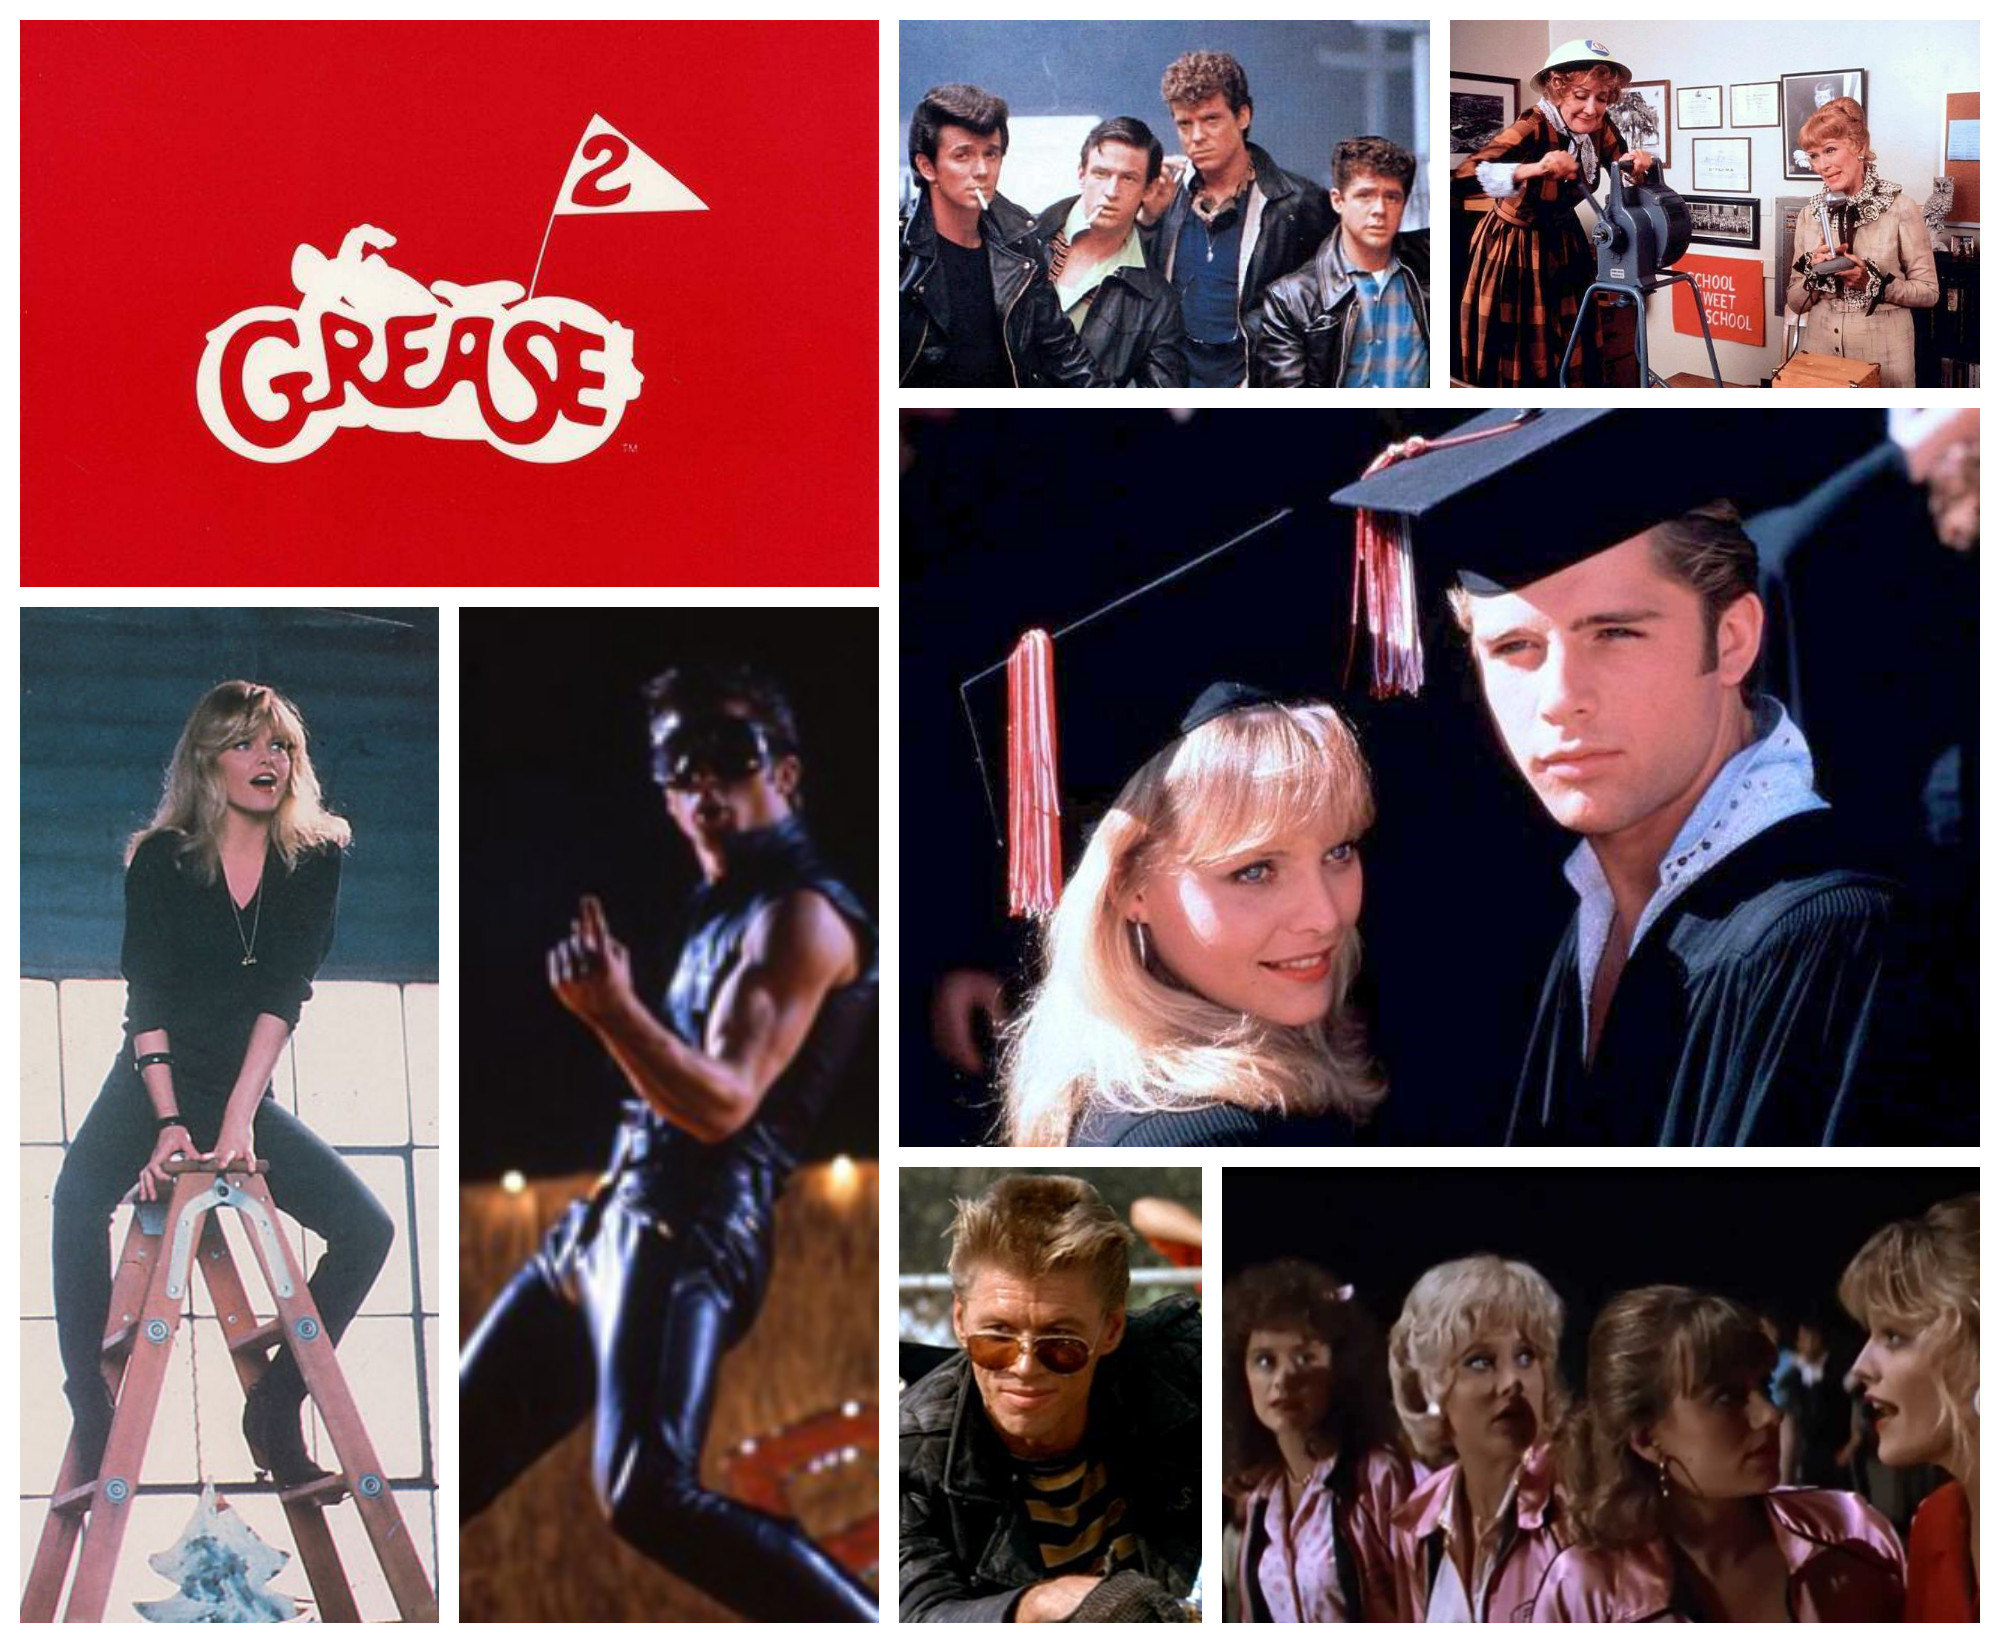 2000x1643 Grease 2 Day - 32 Year Anniversary